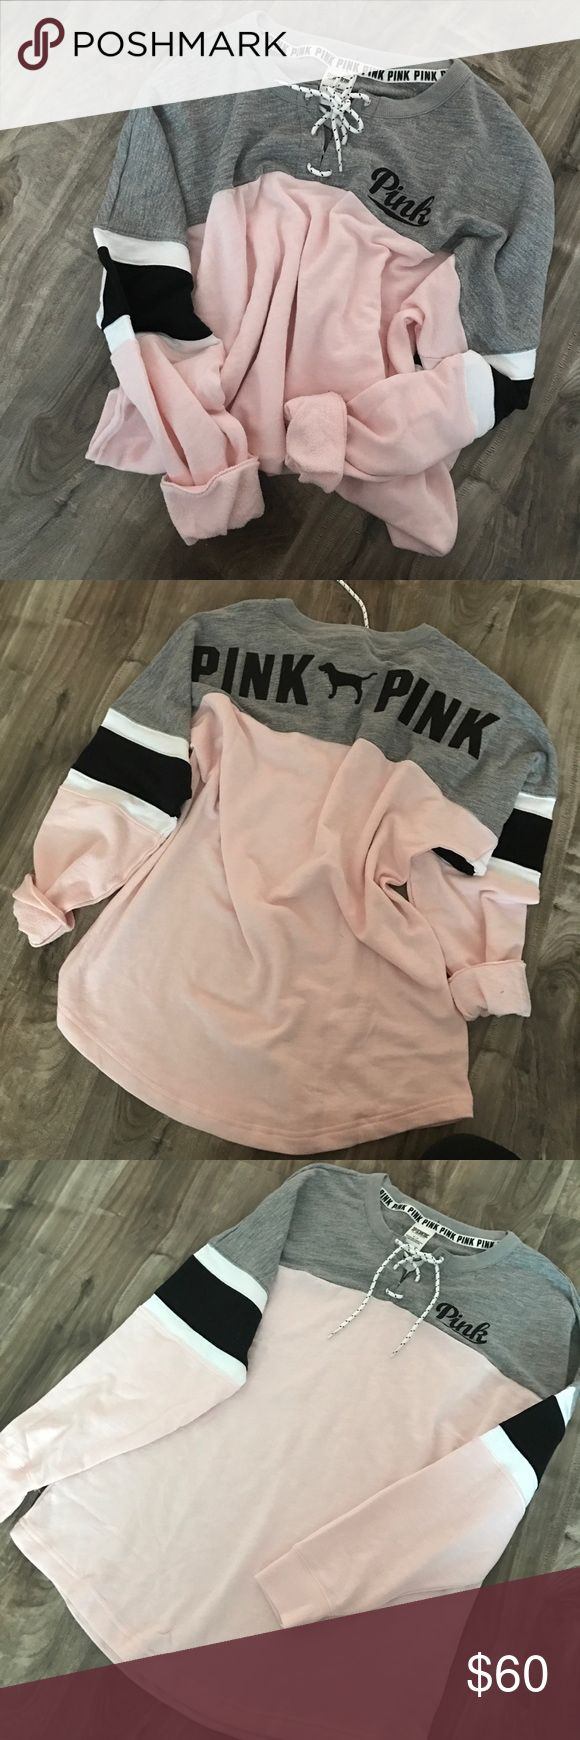 "• vs pink | lace up varsity crewneck • Brand: VS PINK Size: Small Condition: Brand new in packaging, only taken out for picture purposes. Description: Lace up varsity crew neck. Soft pink and gray. The lettering on the back is stitched.   ➕Additional pictures upon request.  ➕Pls ask ALL questions prior to purchasing. ➕Offers via offer button, only pls.  ➖No trades, no holds, no ""lowest?"" PINK Victoria's Secret Tops Sweatshirts & Hoodies"